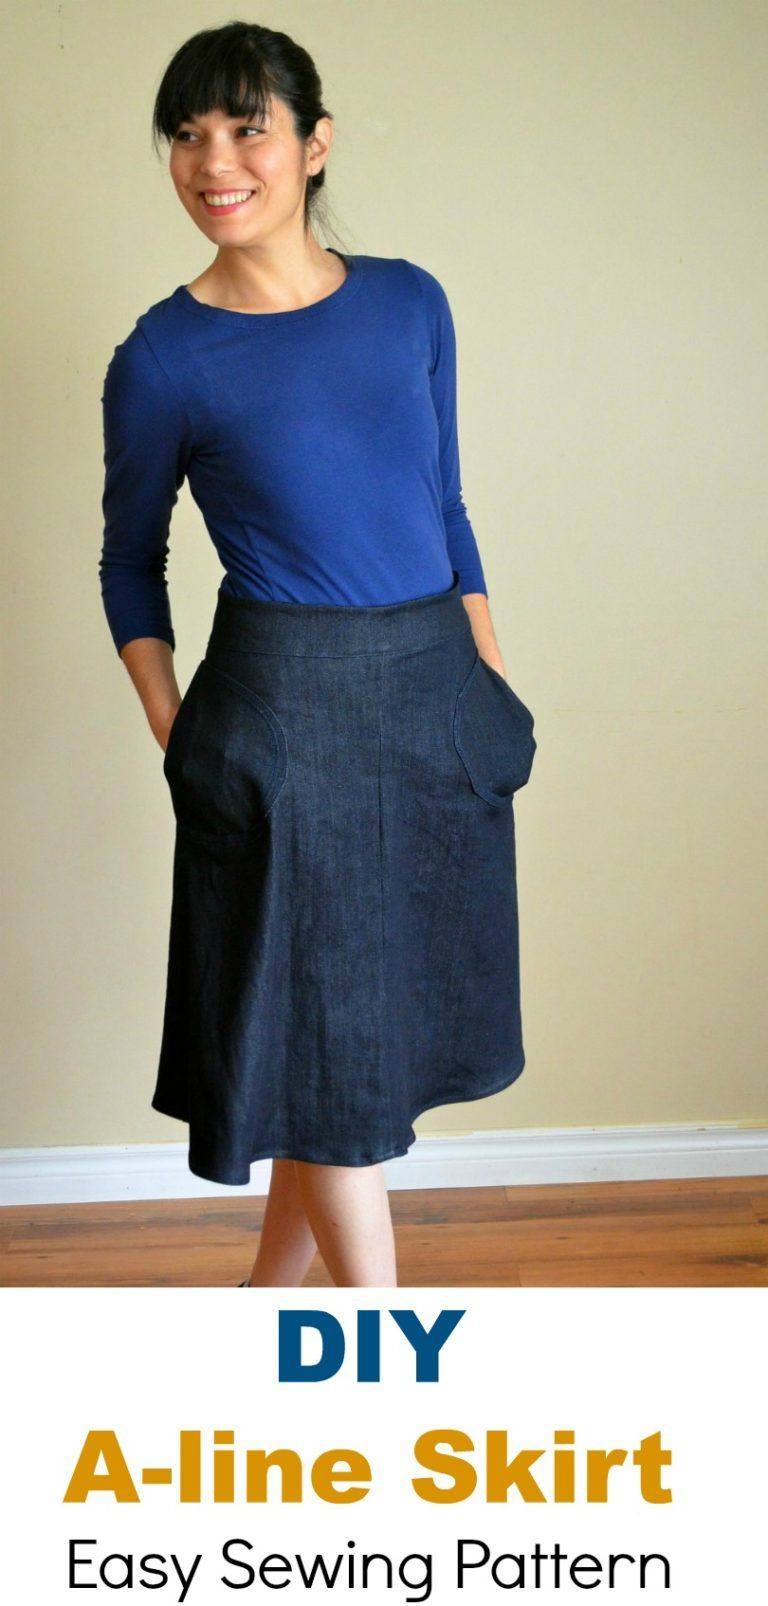 A-Line skirt Free Sewing Pattern | | On the Cutting Floor: Printable pdf sewing patterns and tutorials for women